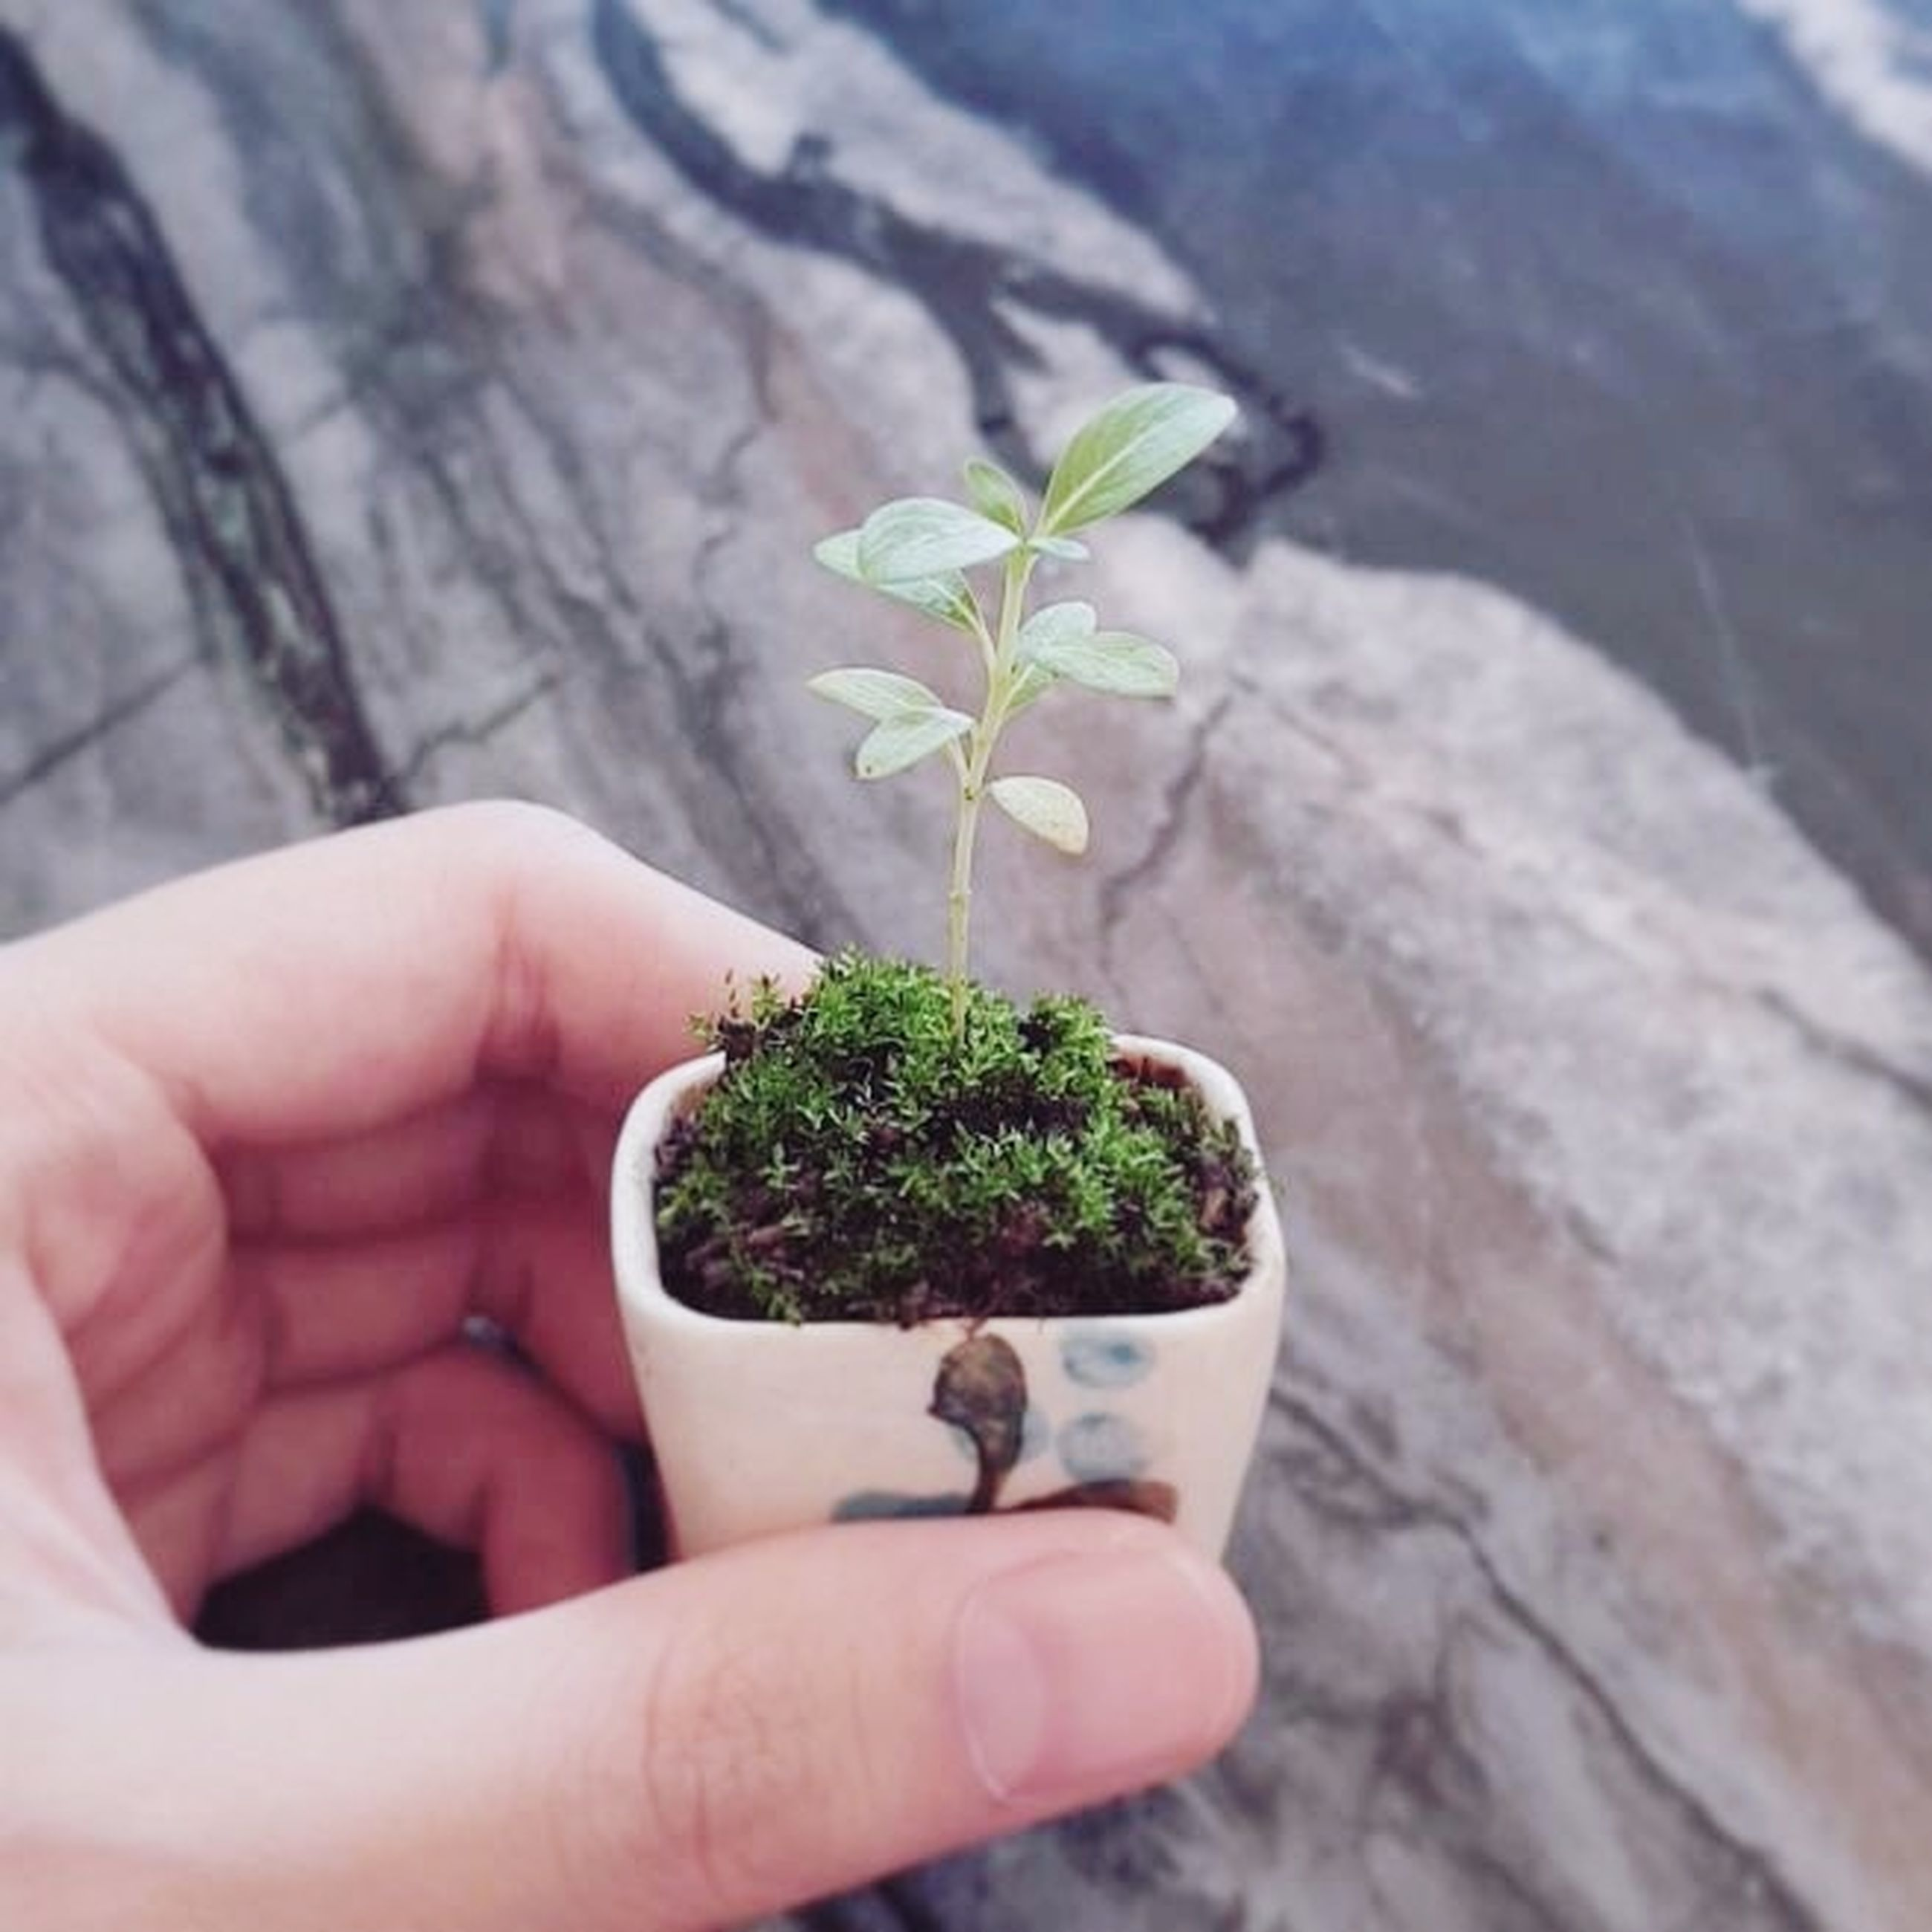 human hand, hand, holding, human body part, plant, growth, beginnings, nature, one person, leaf, close-up, plant part, seedling, care, dirt, new life, fragility, green color, botany, outdoors, small, sapling, gardening, planting, finger